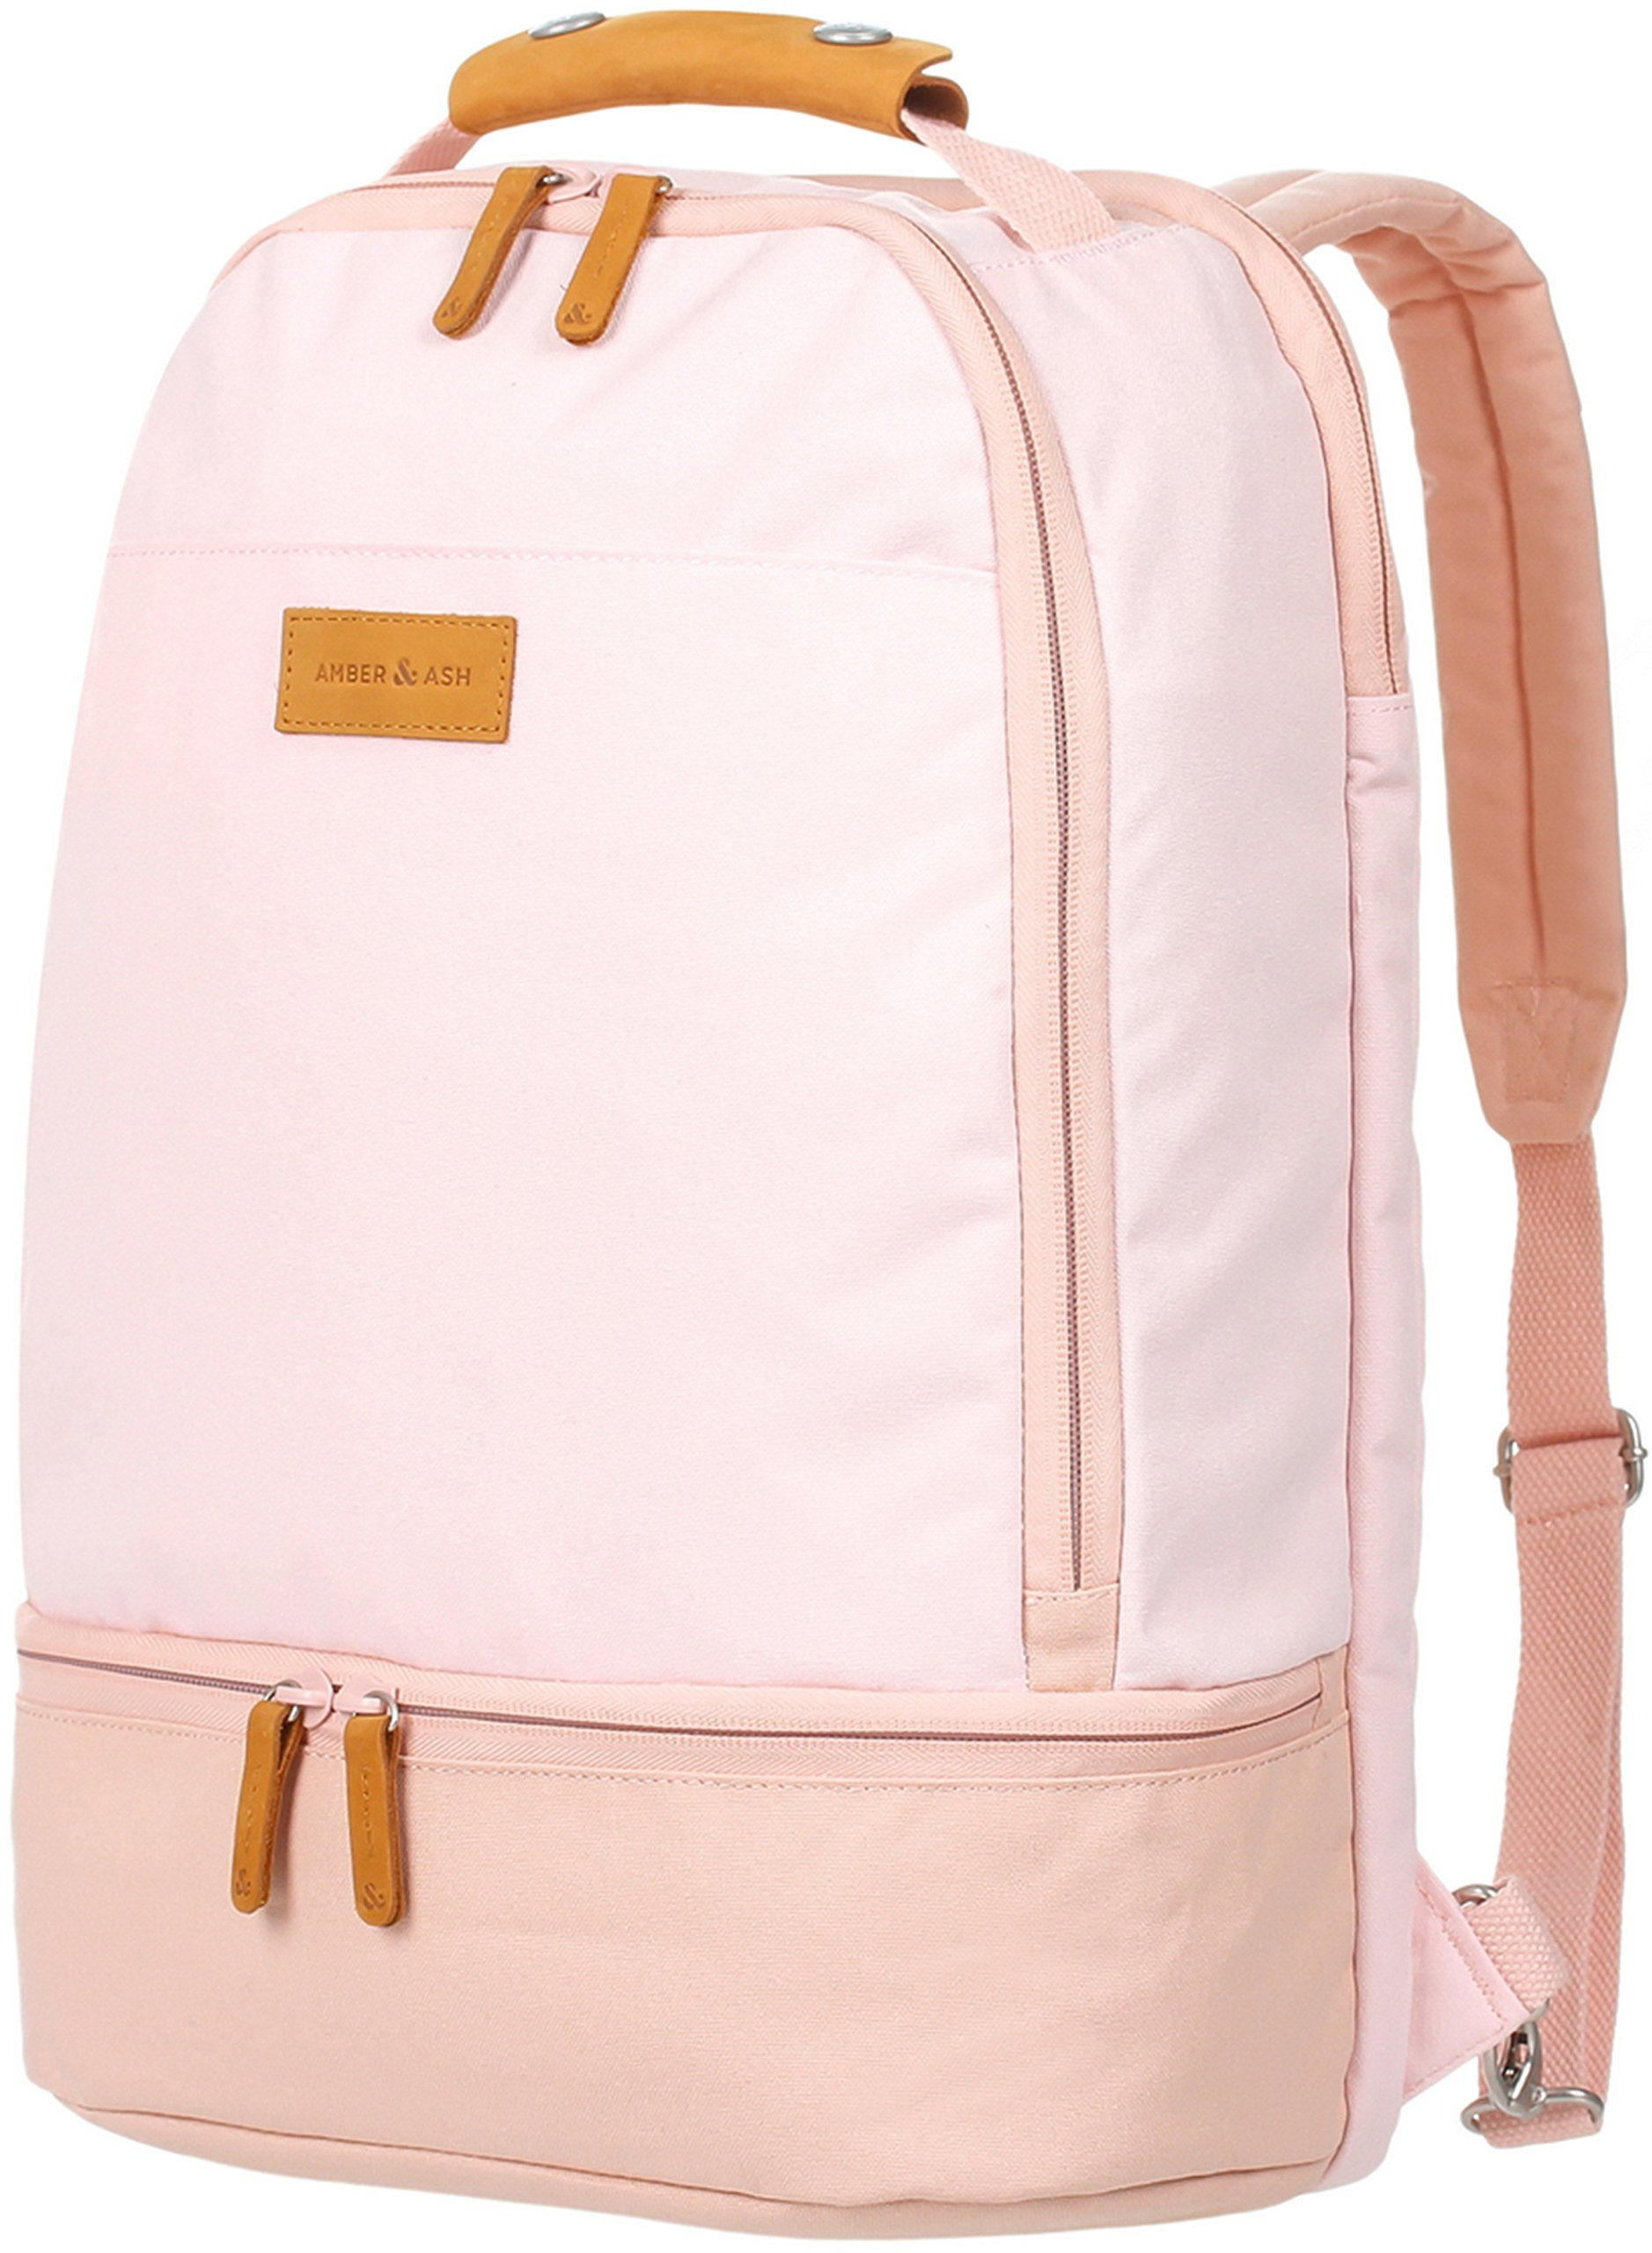 d32be36e53 Everyday Laptop Backpack AMBER   ASH Business Anti Theft Slim Durable  Backpack